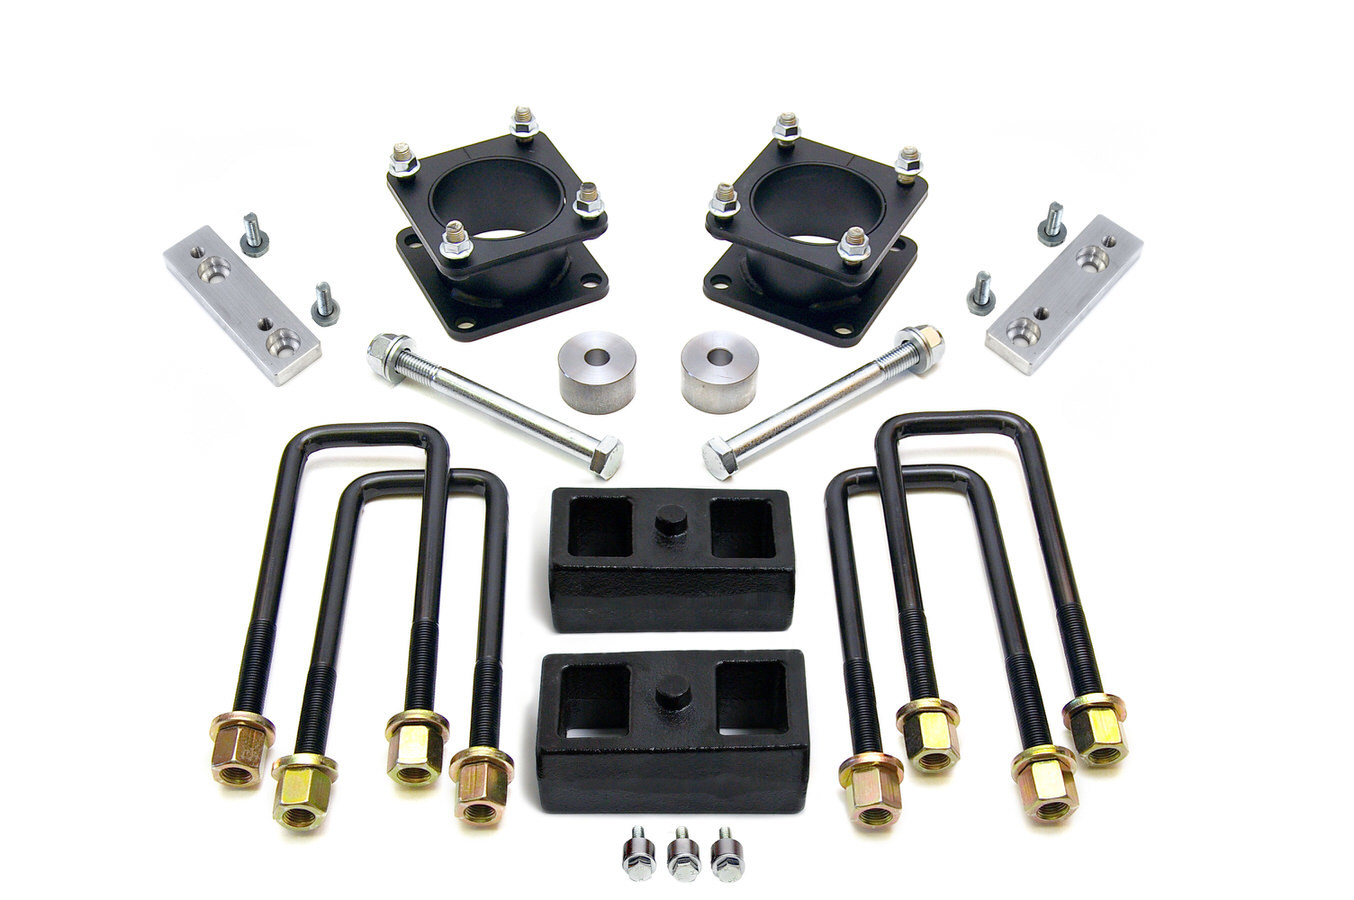 3.0in Front/2.0in Rear S ST Lift KIt 07-18 Tundra